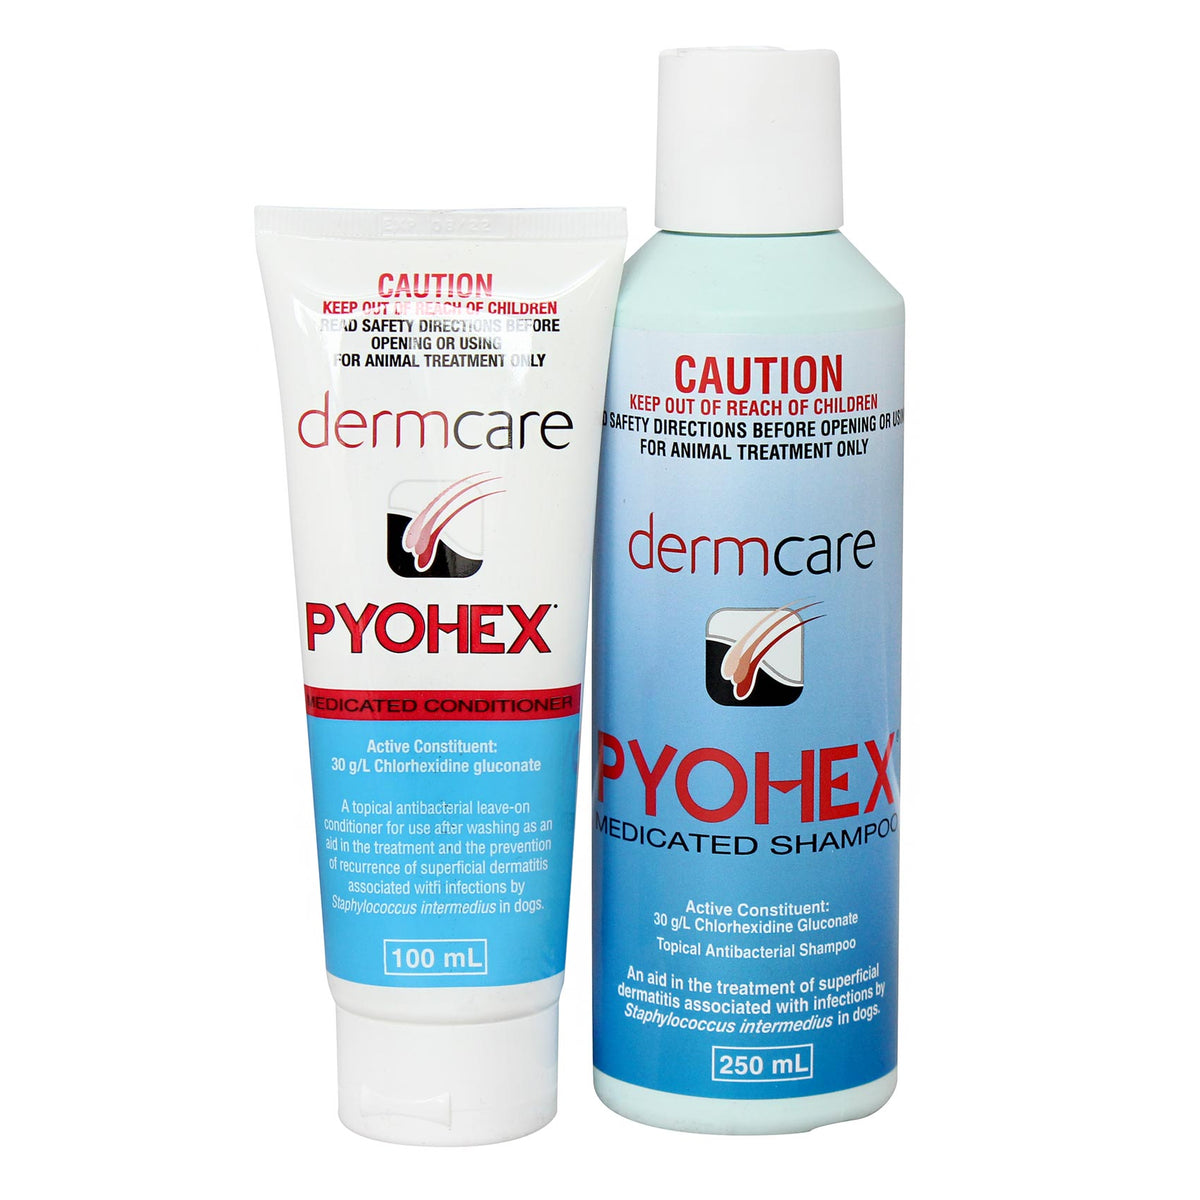 Pyohex Medicated Shampoo for Bacterial Skin Infections in Dogs